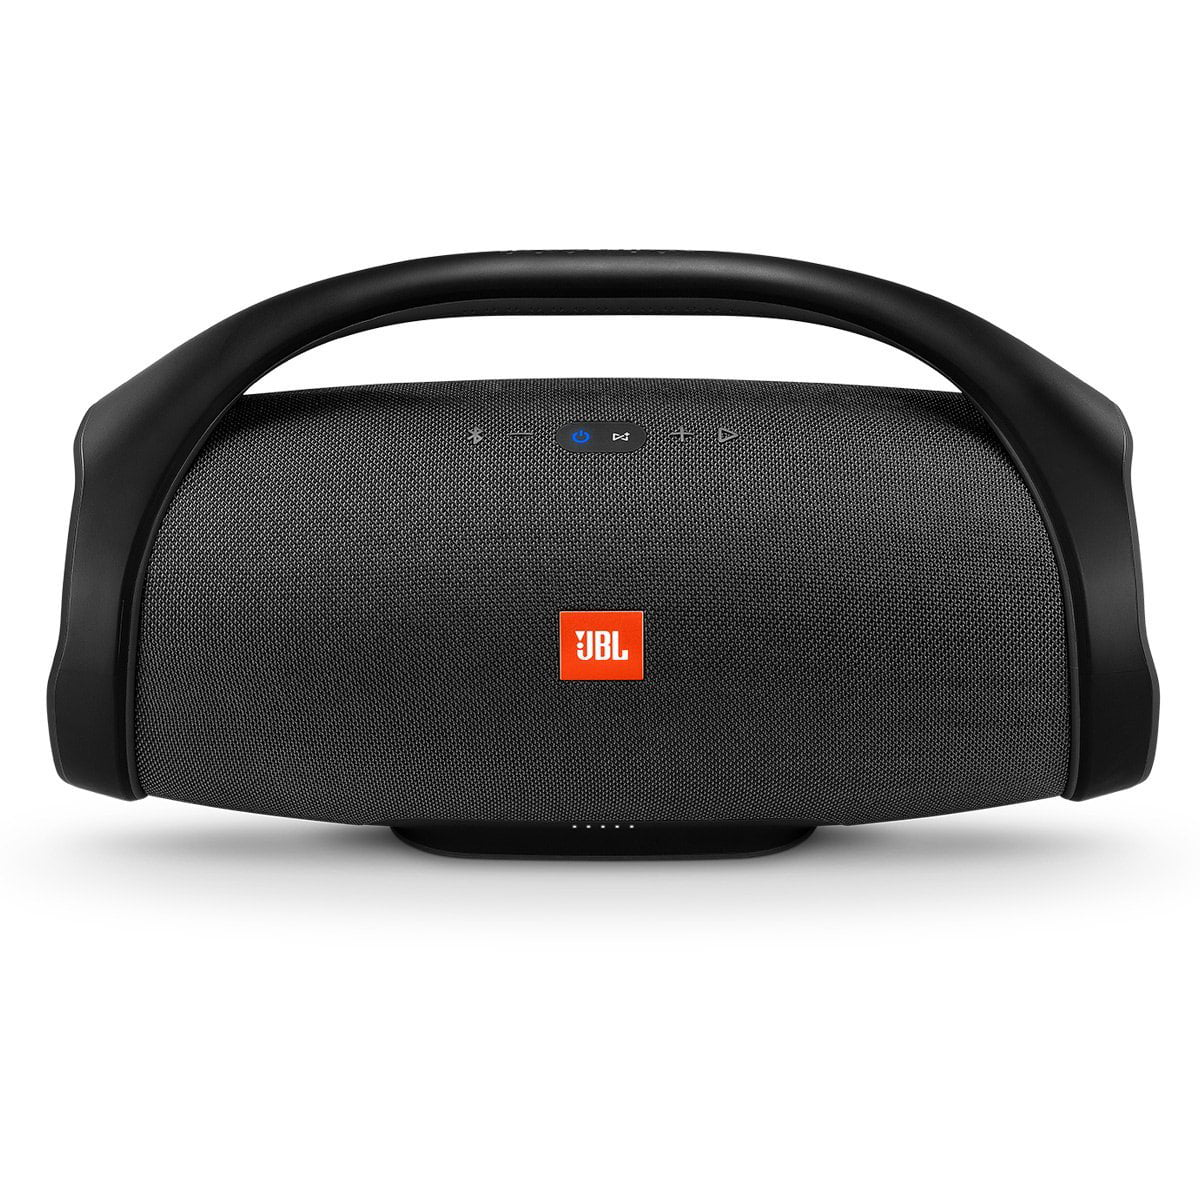 JBLBOOMBOXBLK JBL Boombox Portable Bluetooth Waterproof Speaker (Black) by JBL